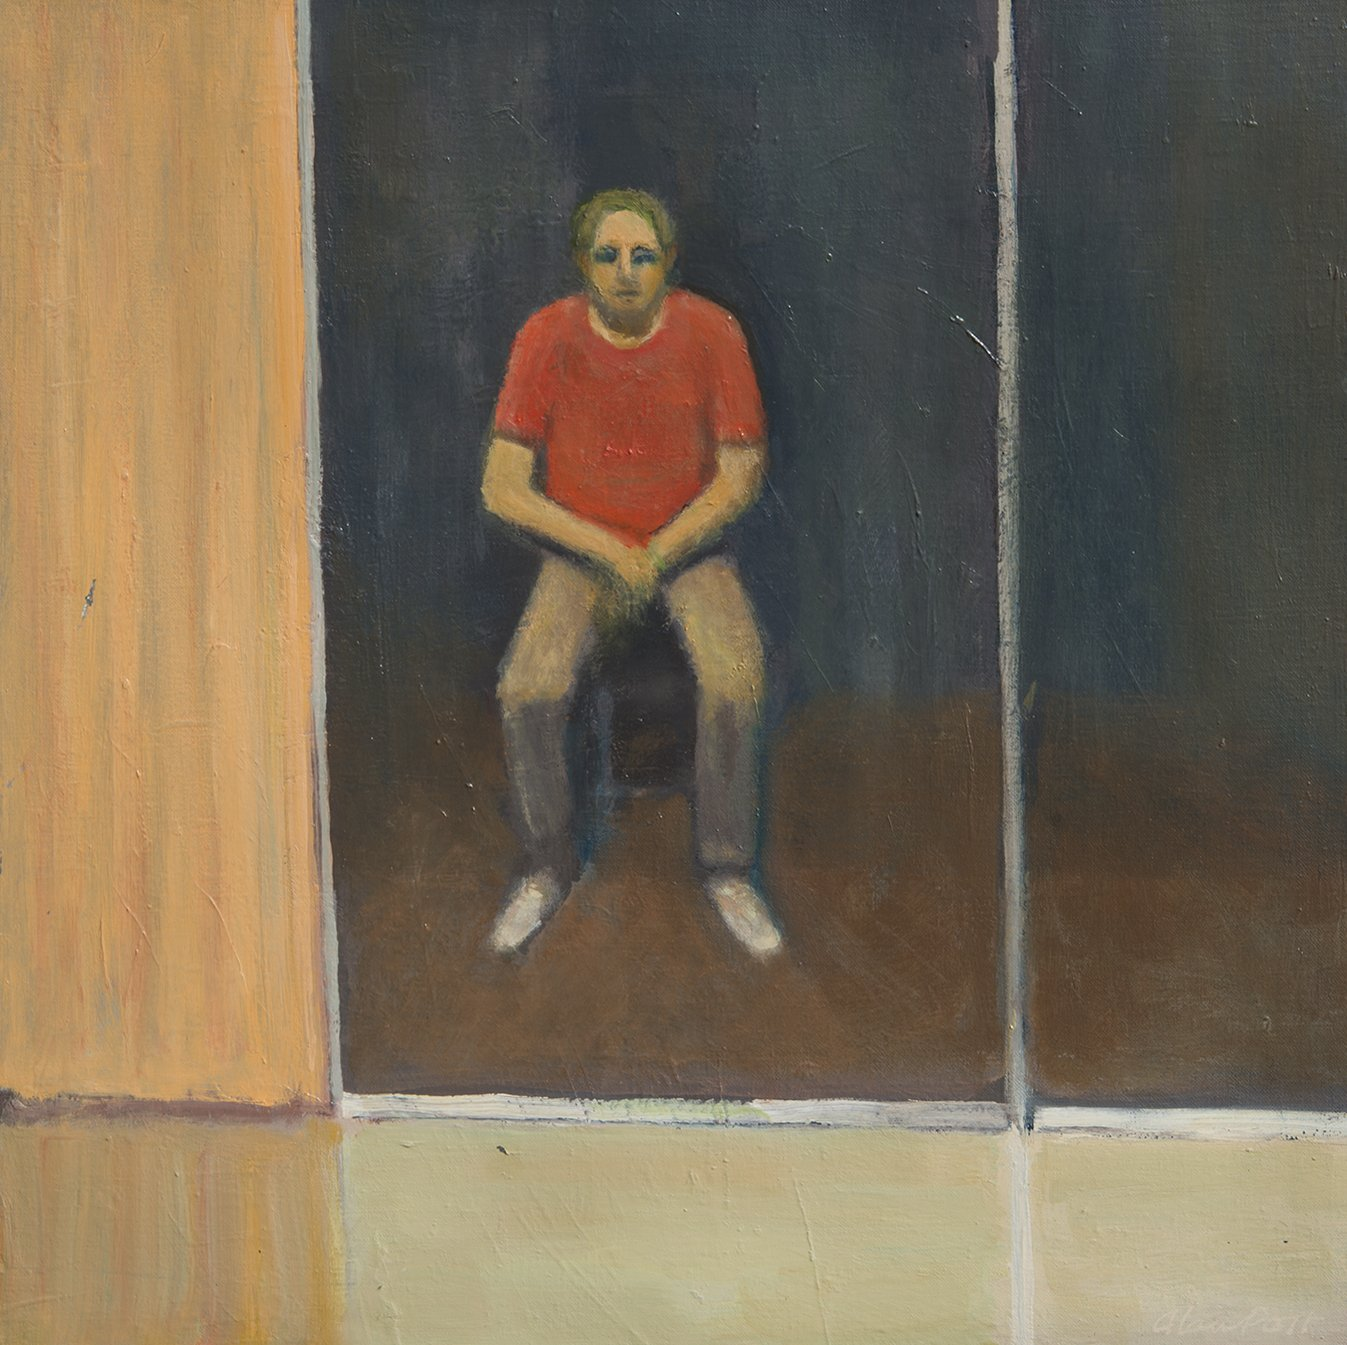 Alan Post, Night Sitter, 1976